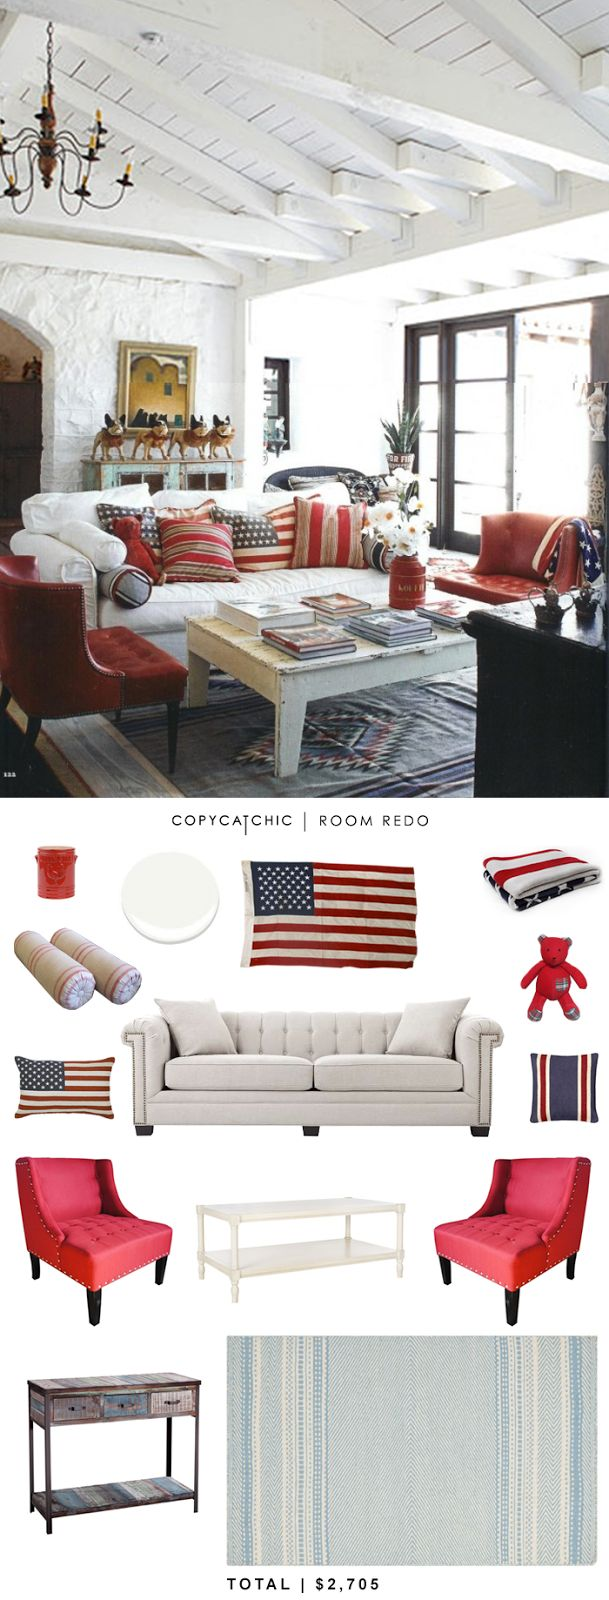 Best 25+ Living Room Red Ideas On Pinterest | Red Living Room Decor, Red  Couch Rooms And Red Sofa Decor Part 52